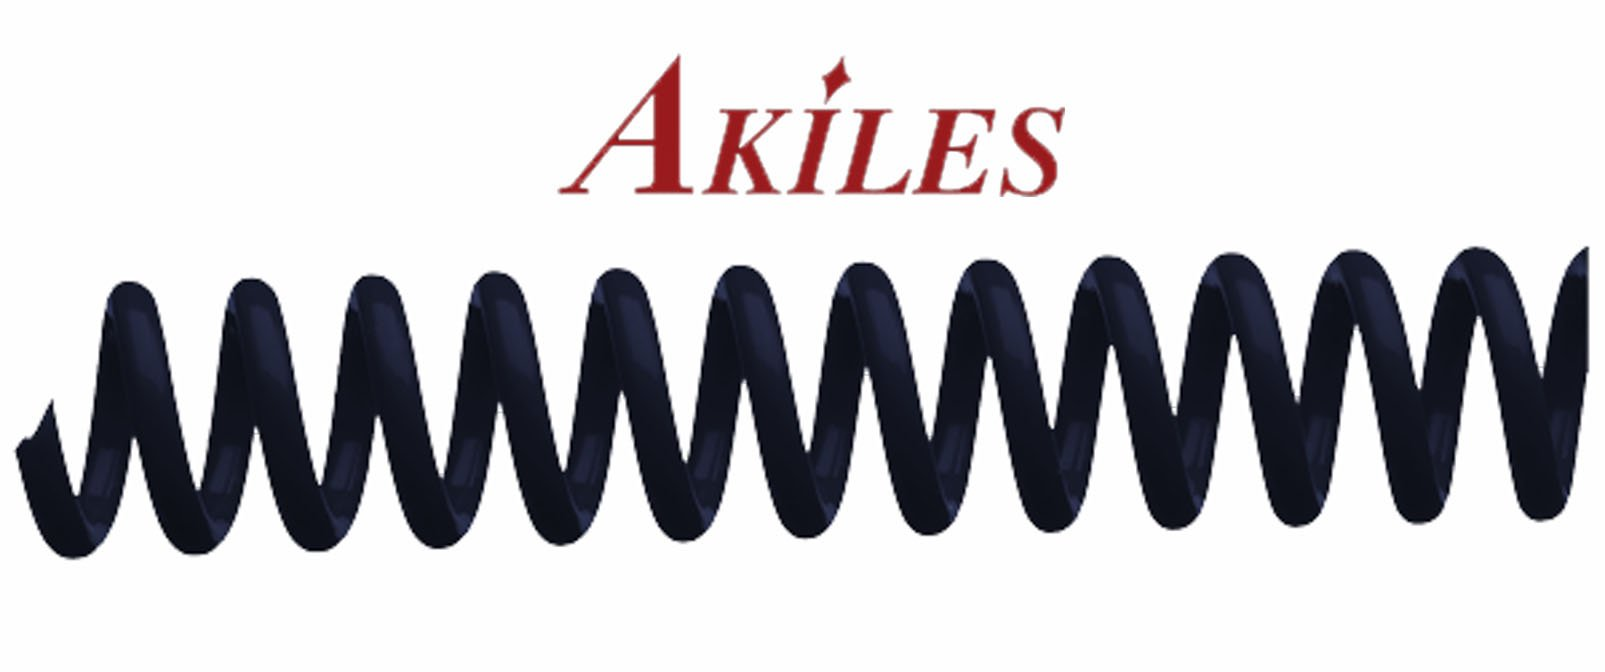 Akiles Spiral Coil Binding Spines 10mm (3/8 x 12-inch) 4:1 (pk of 100) Navy Blue by Oregon Lamination